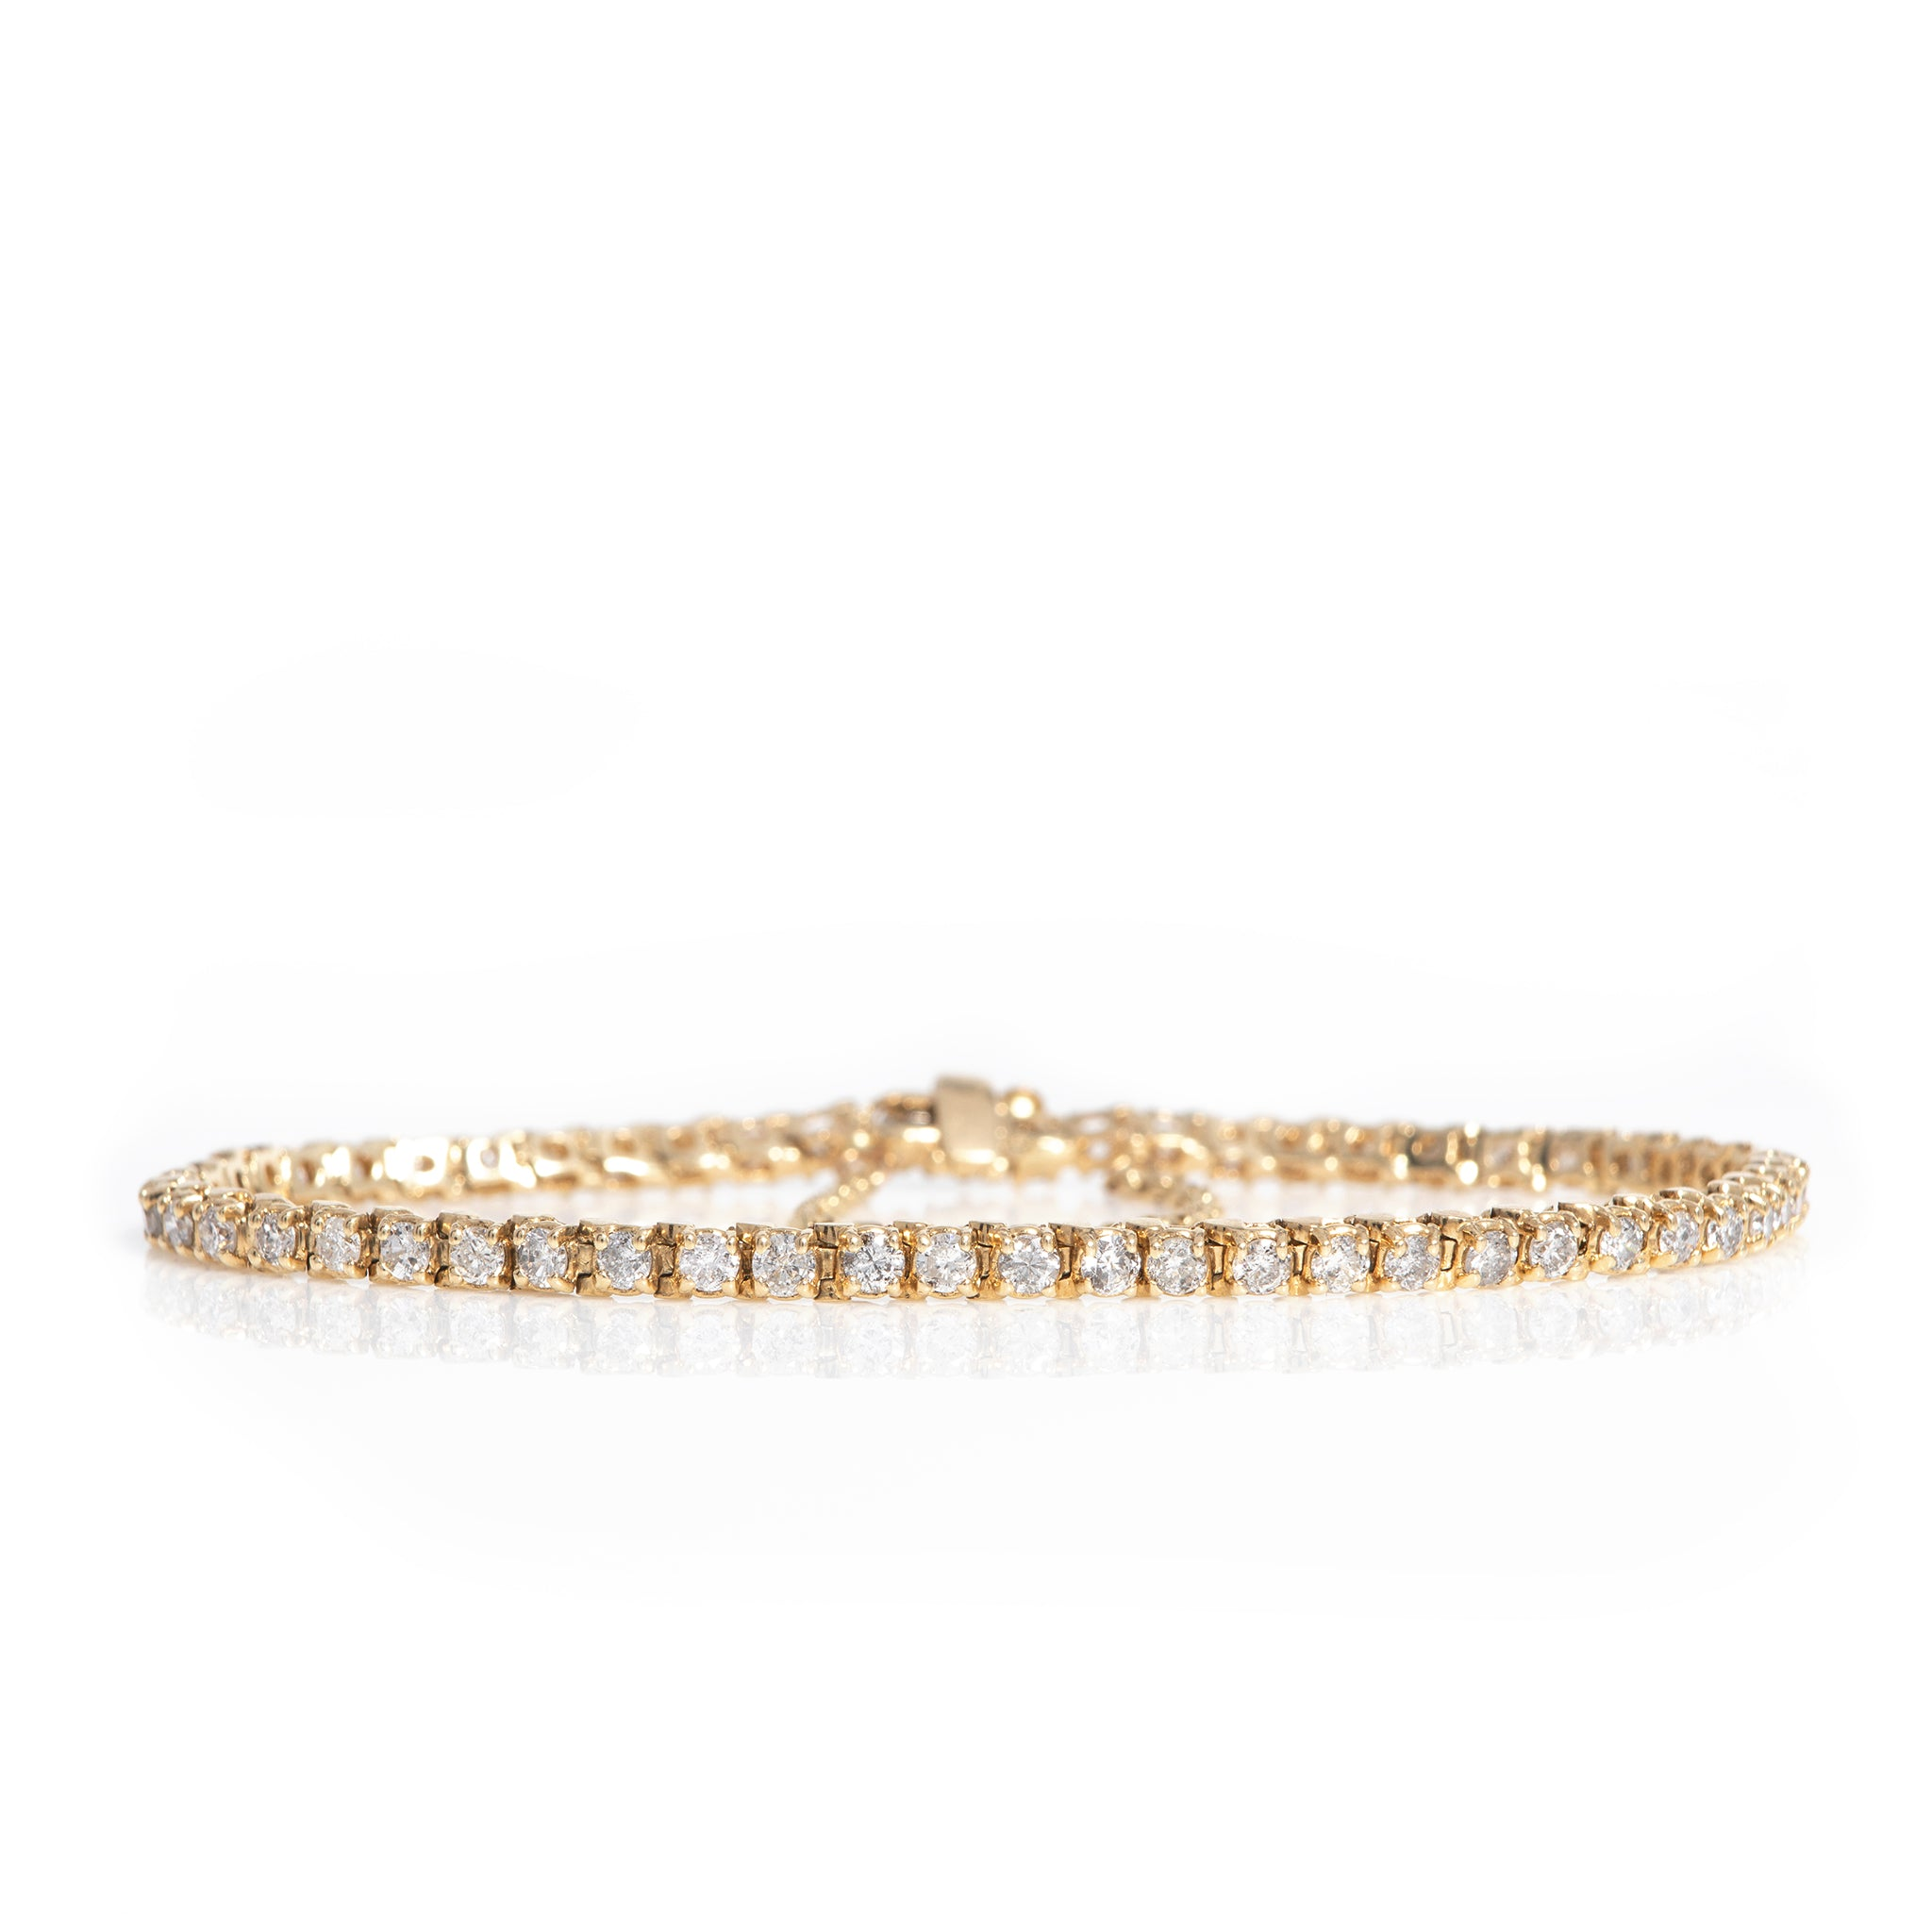 *SOLD* Three Carat Diamond Tennis Bracelet in Yellow Gold - Sindur Style